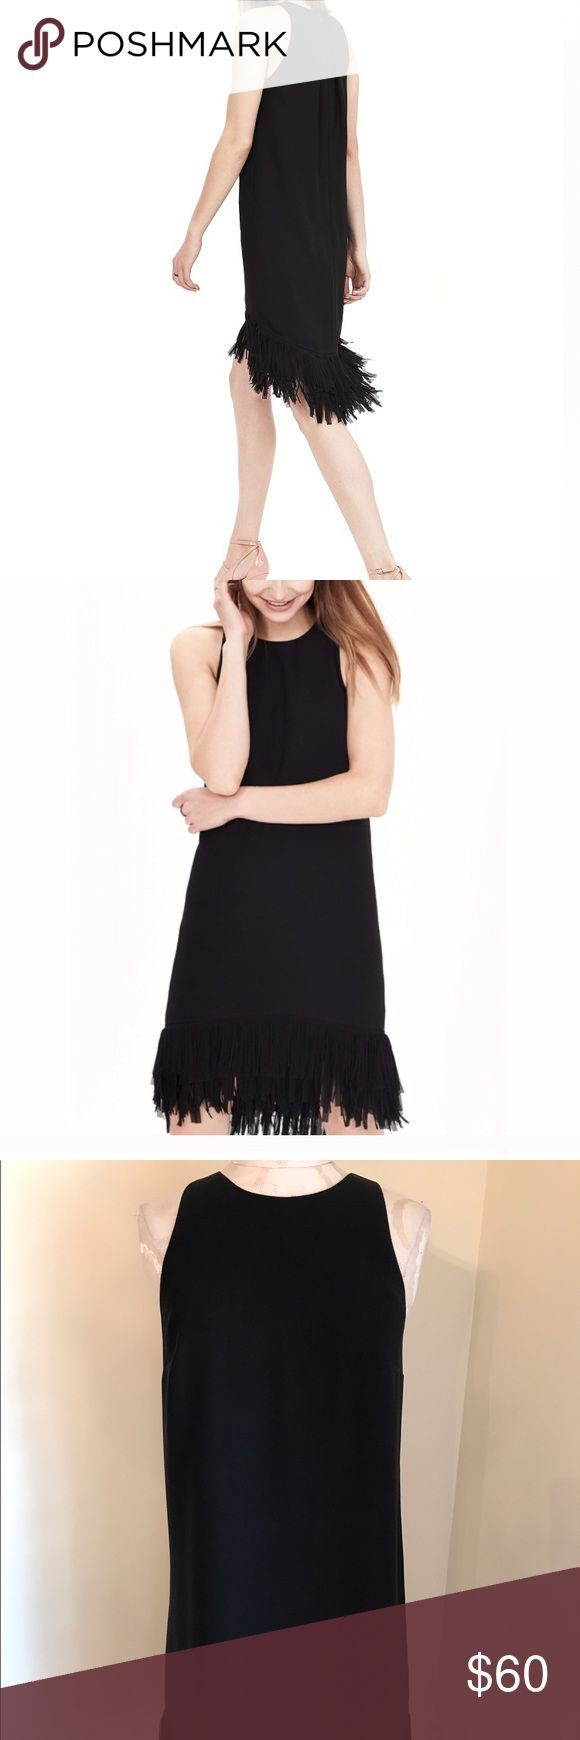 Banana Republic Black Fringe Dress 2 Banana Republic SOLD OUT black fringe sleeveless dress. Lined & zips up back hidden zipper. Pleated in back. Size 2. Bought new and wore once. Retailed $198.00. Perfect condition. Nonsmoking home. The high-low hem gives the black cocktail dress a playful feel. Pair with a pair of standout pumps. An easy black dress you will continue to pull out of your closet. Banana Republic Dresses High Low